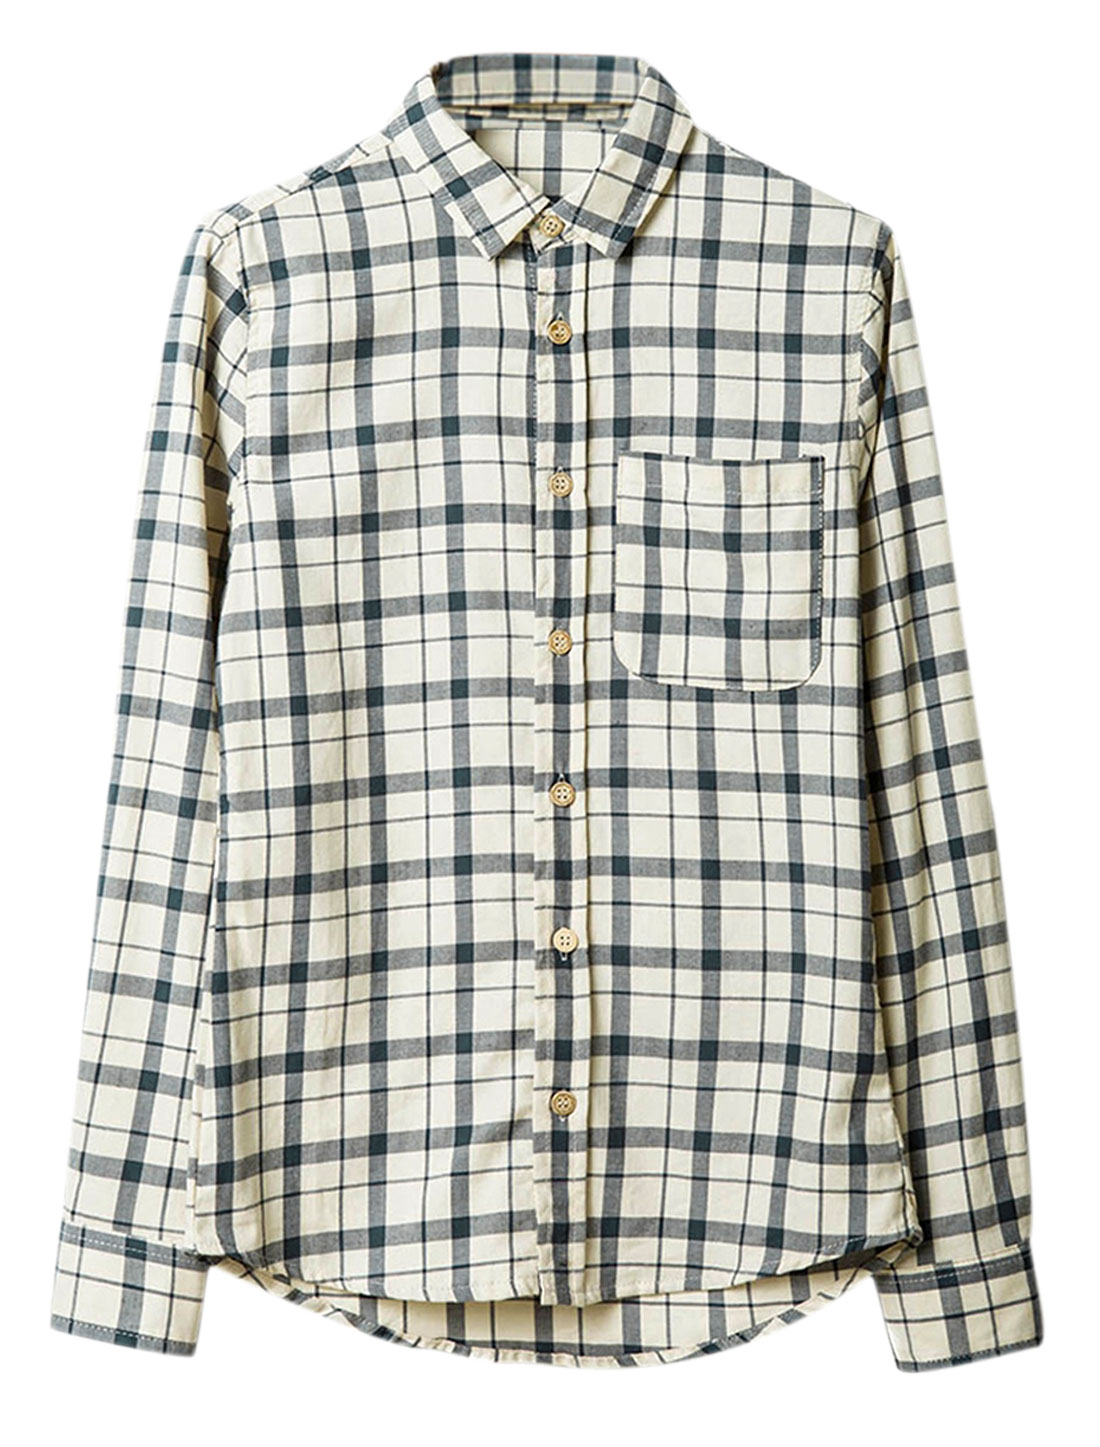 Men Point Collar Check Pattern Single Breasted Leisure Shirt Beige M